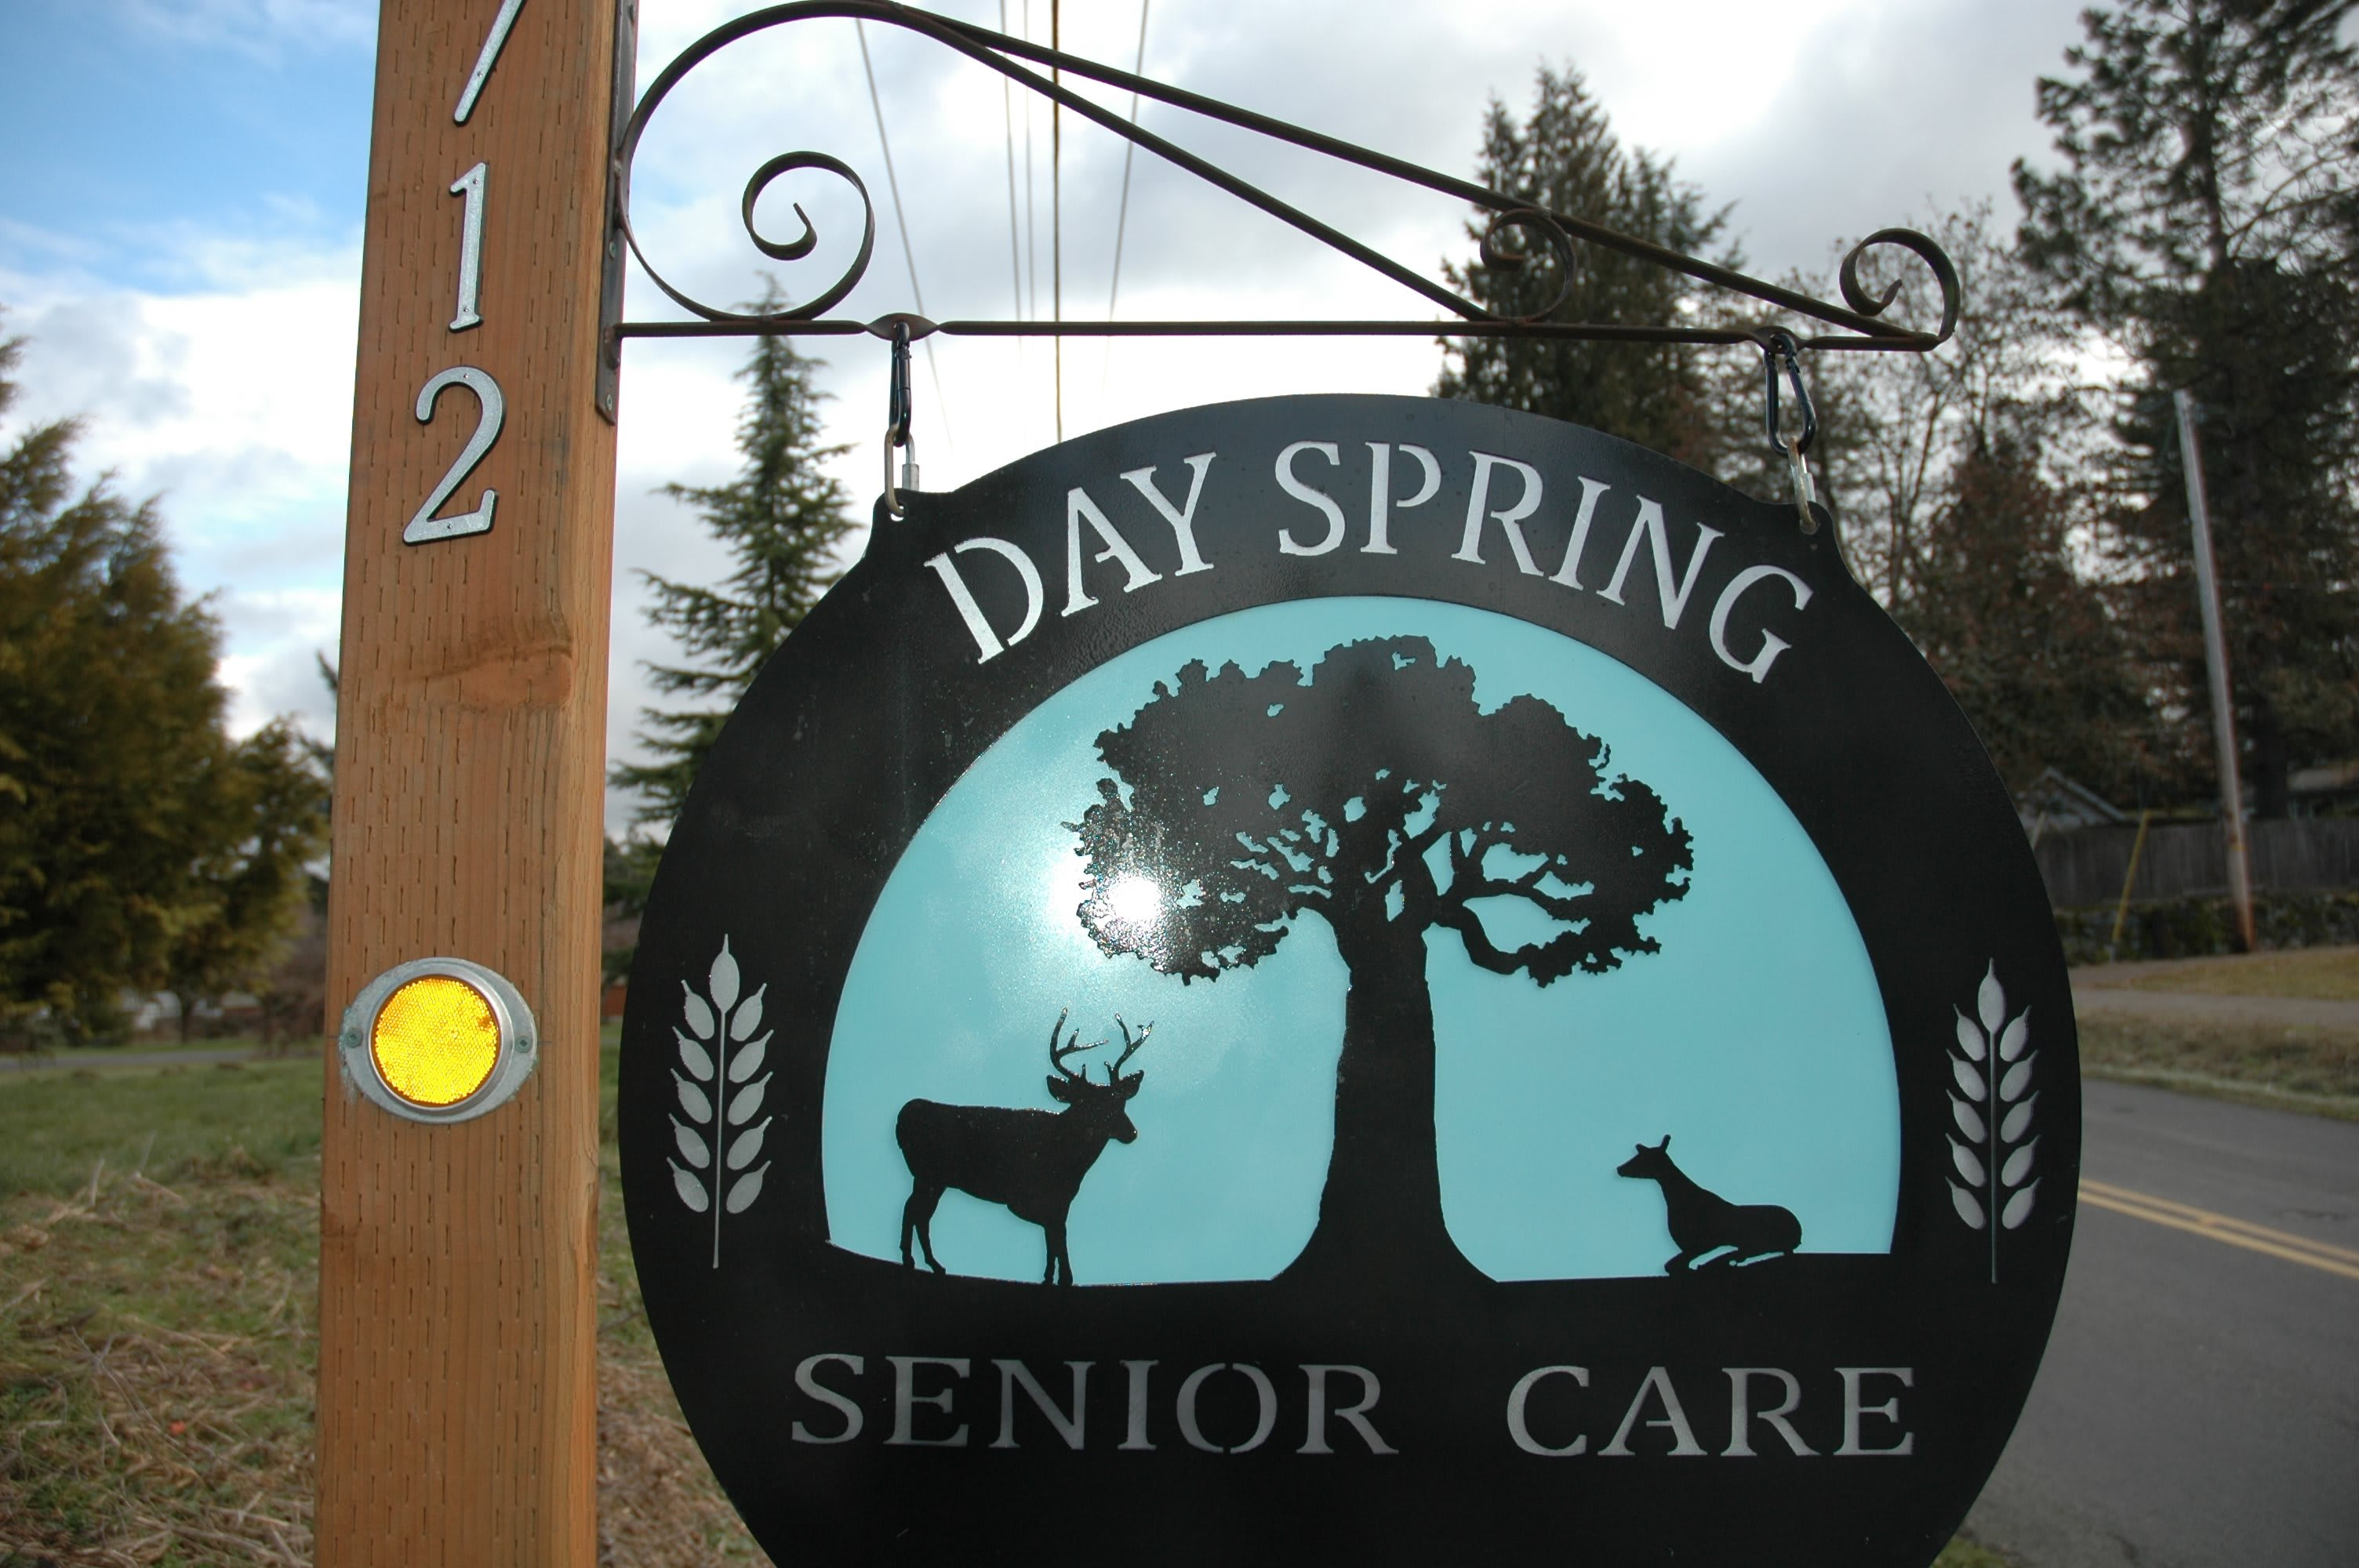 Photo 1 of Dayspring Memory Care